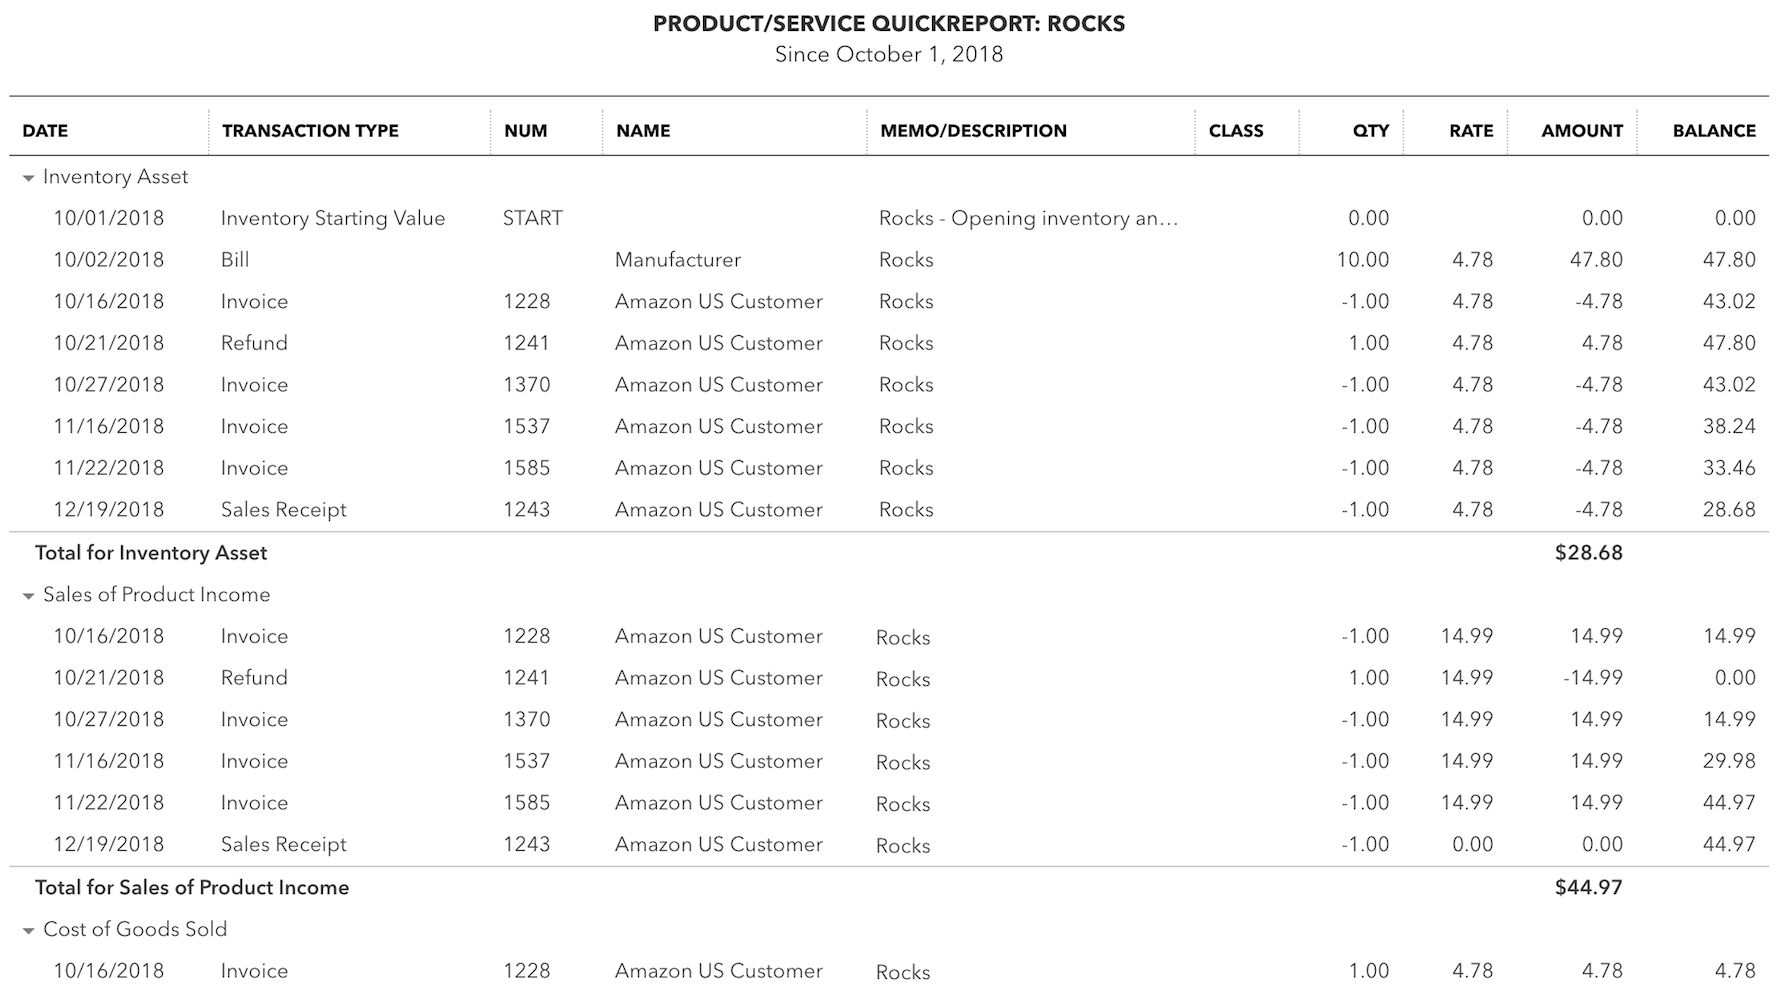 Product Quick Report